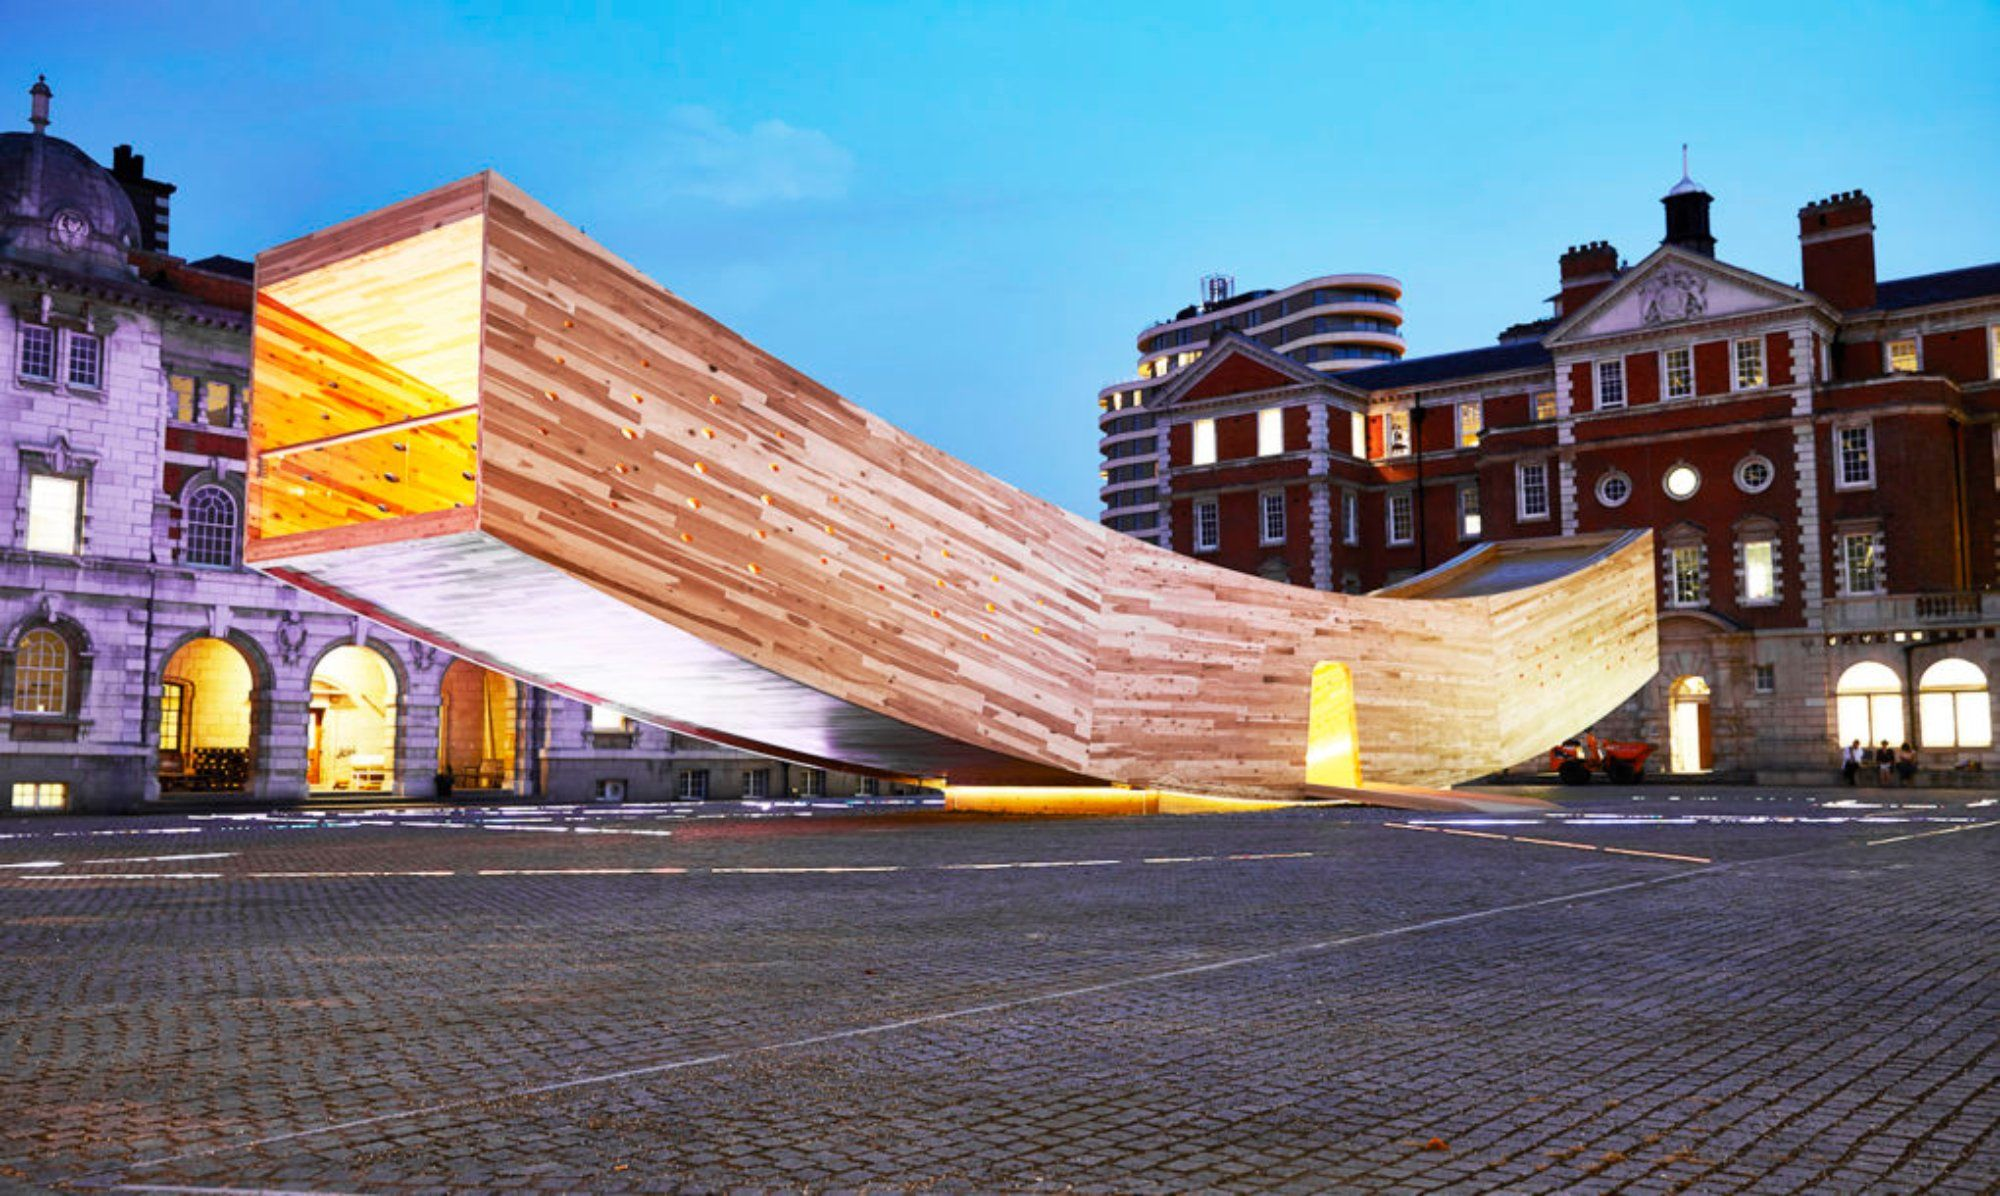 During the London Design Festival 2017, hundreds of large-scale installations, exhibitions and events pop up in many unique spaces across London, from world-fam